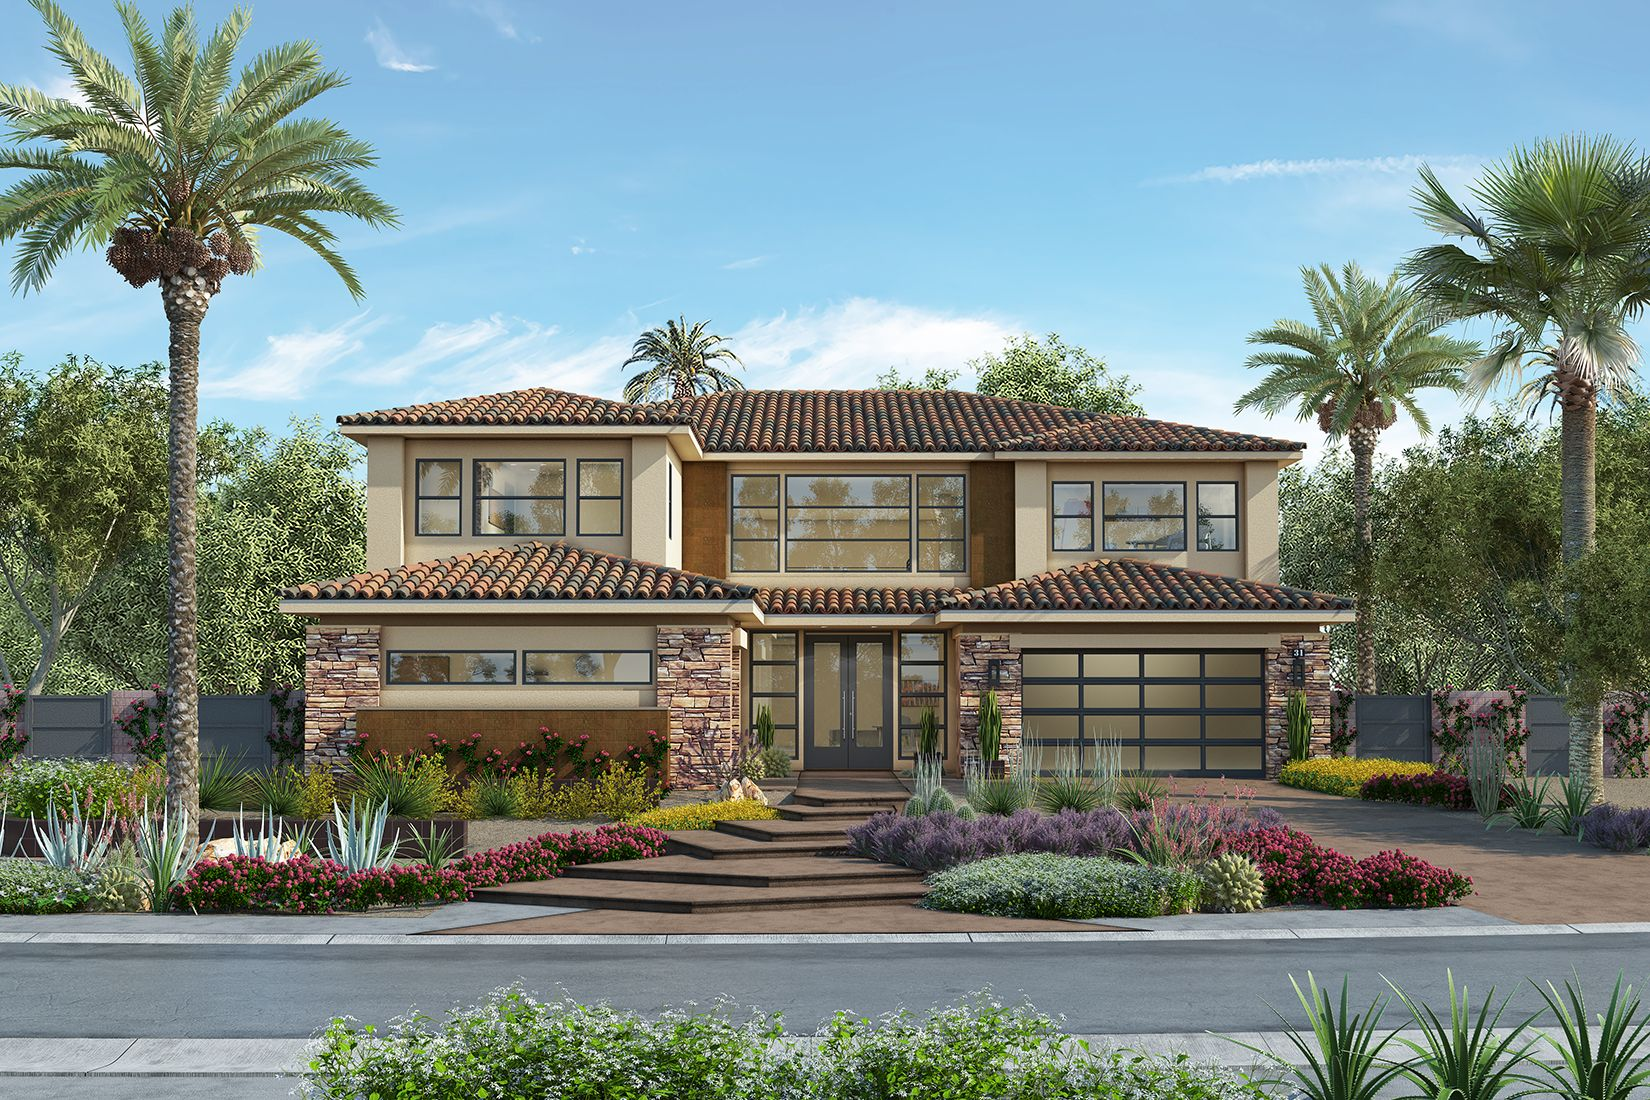 Anthem henderson new homes new homes for sale in anthem for Lago vista builders